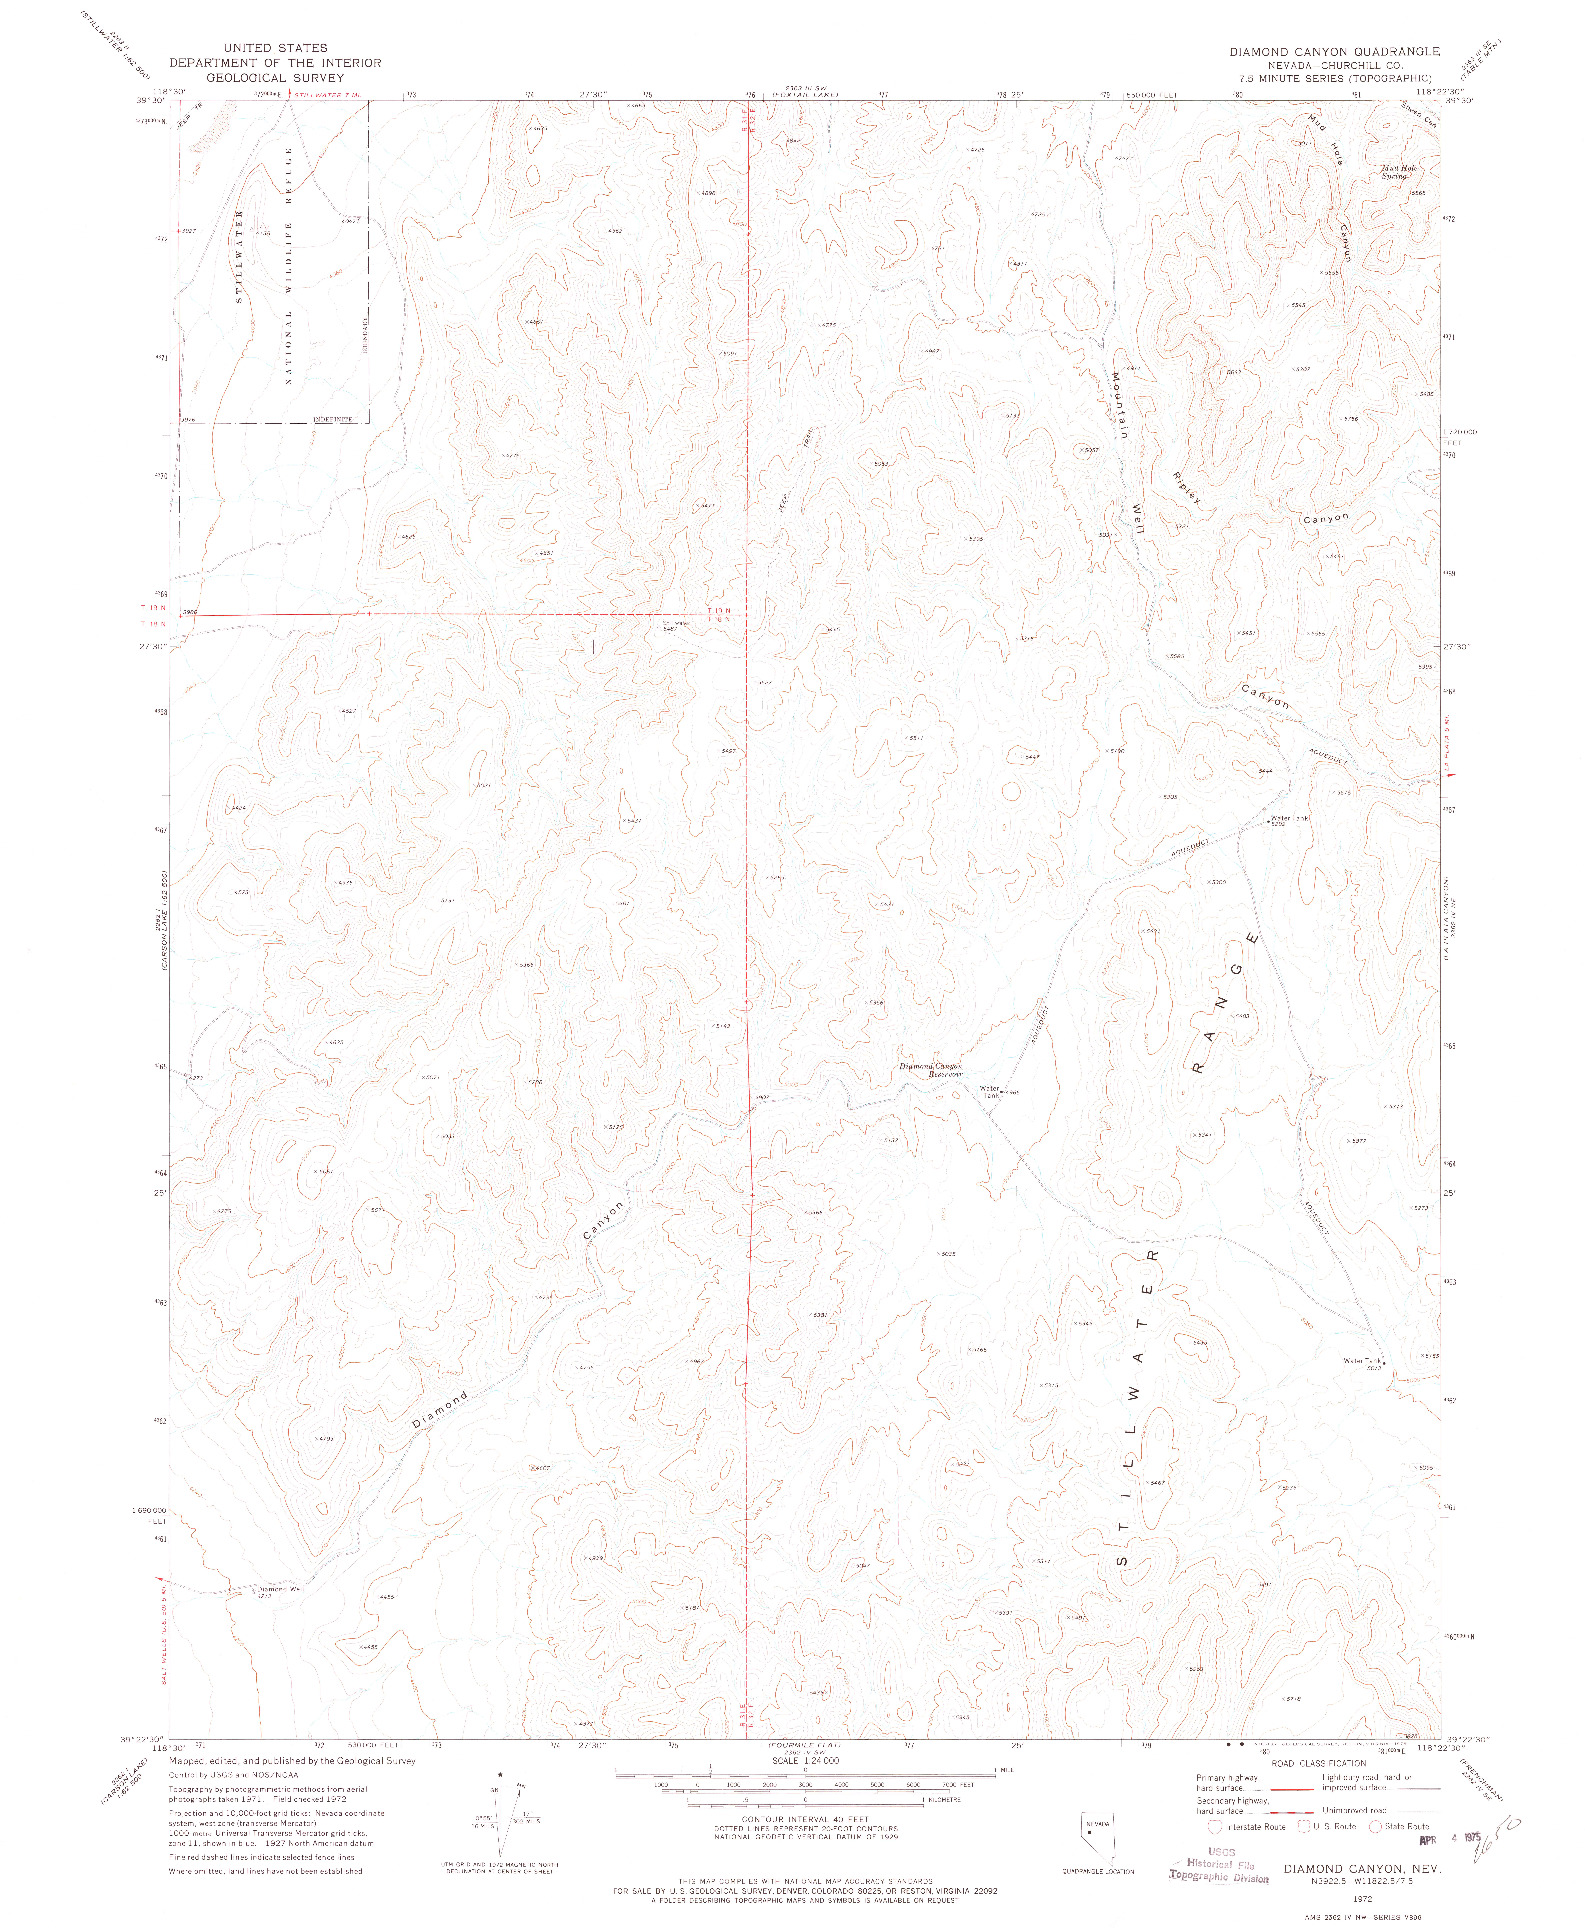 USGS 1:24000-SCALE QUADRANGLE FOR DIAMOND CANYON, NV 1972